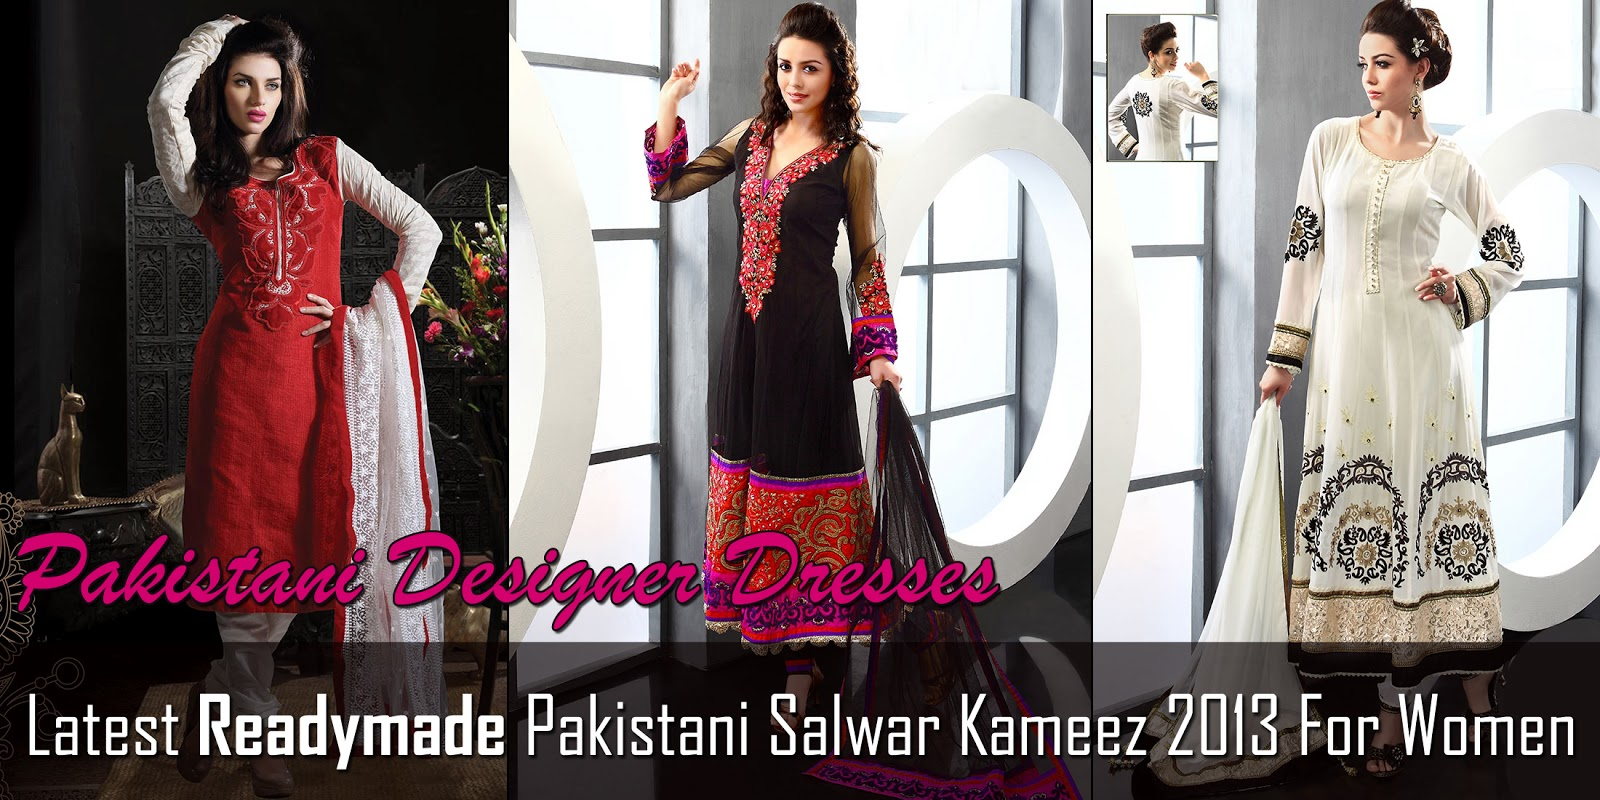 Latest Readymade Pakistani Salwar Kameez